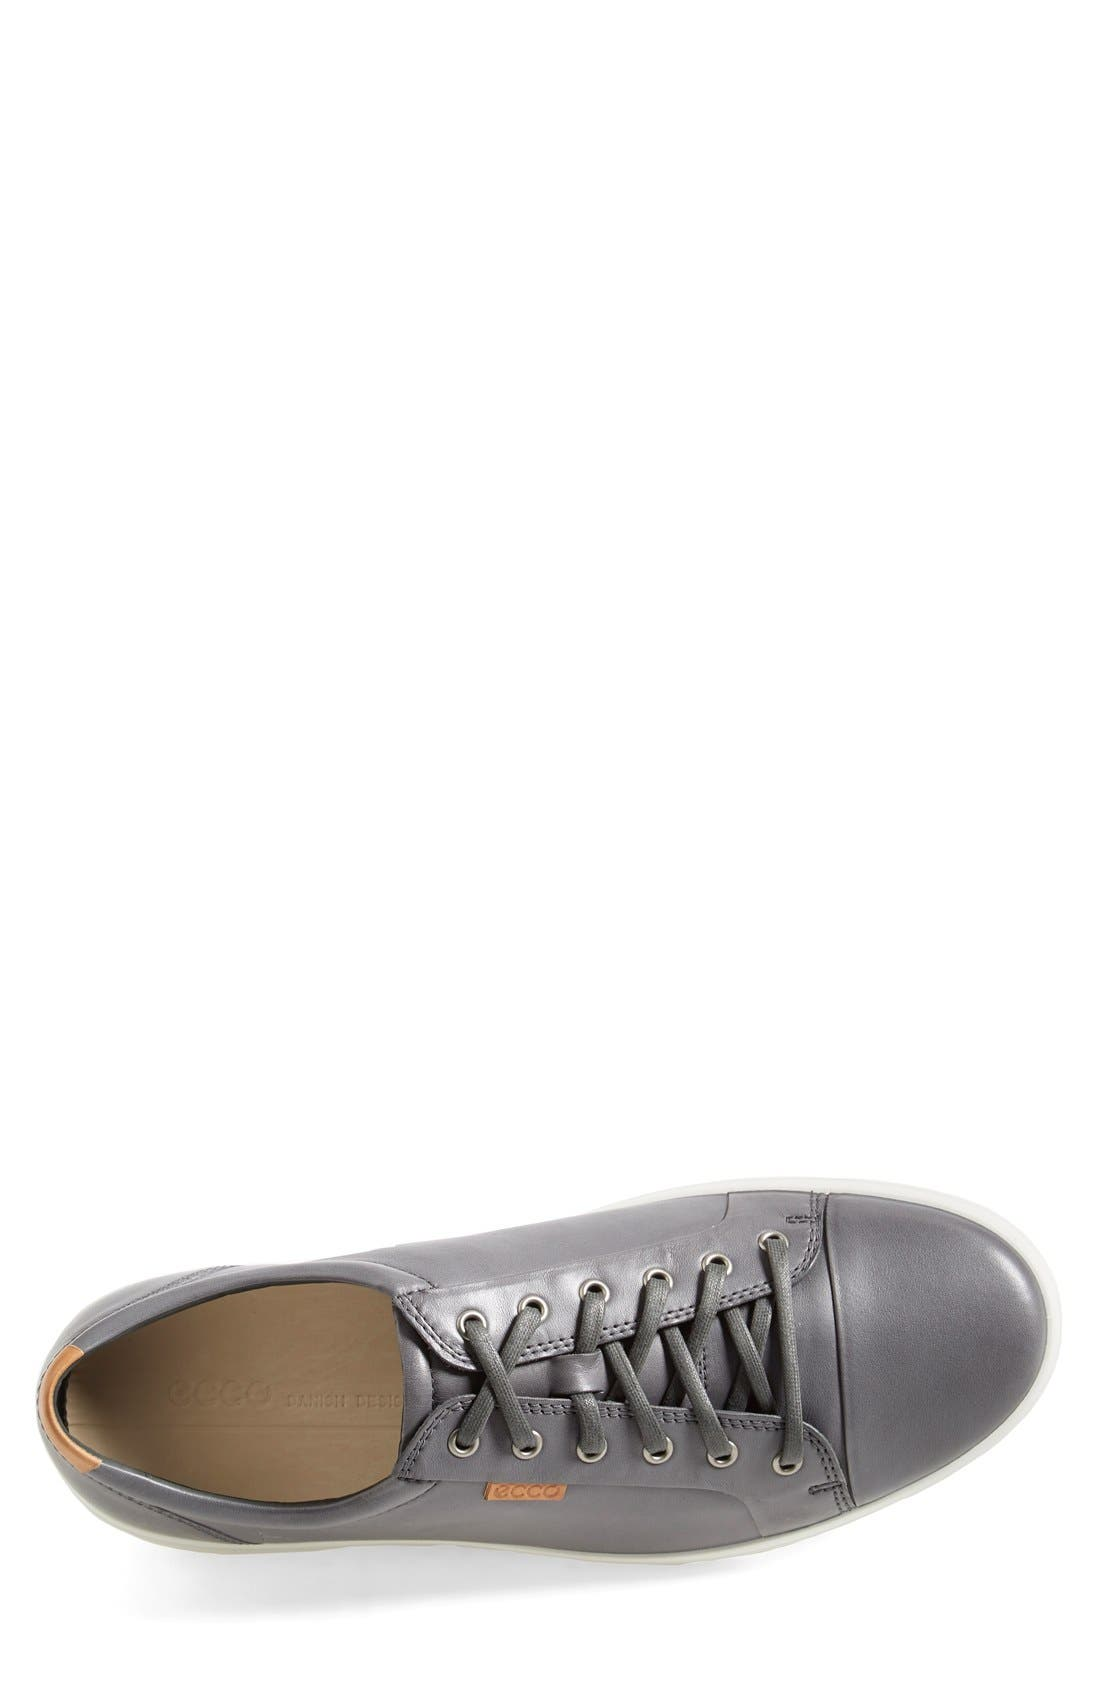 Soft VII Lace-Up Sneaker,                             Alternate thumbnail 52, color,